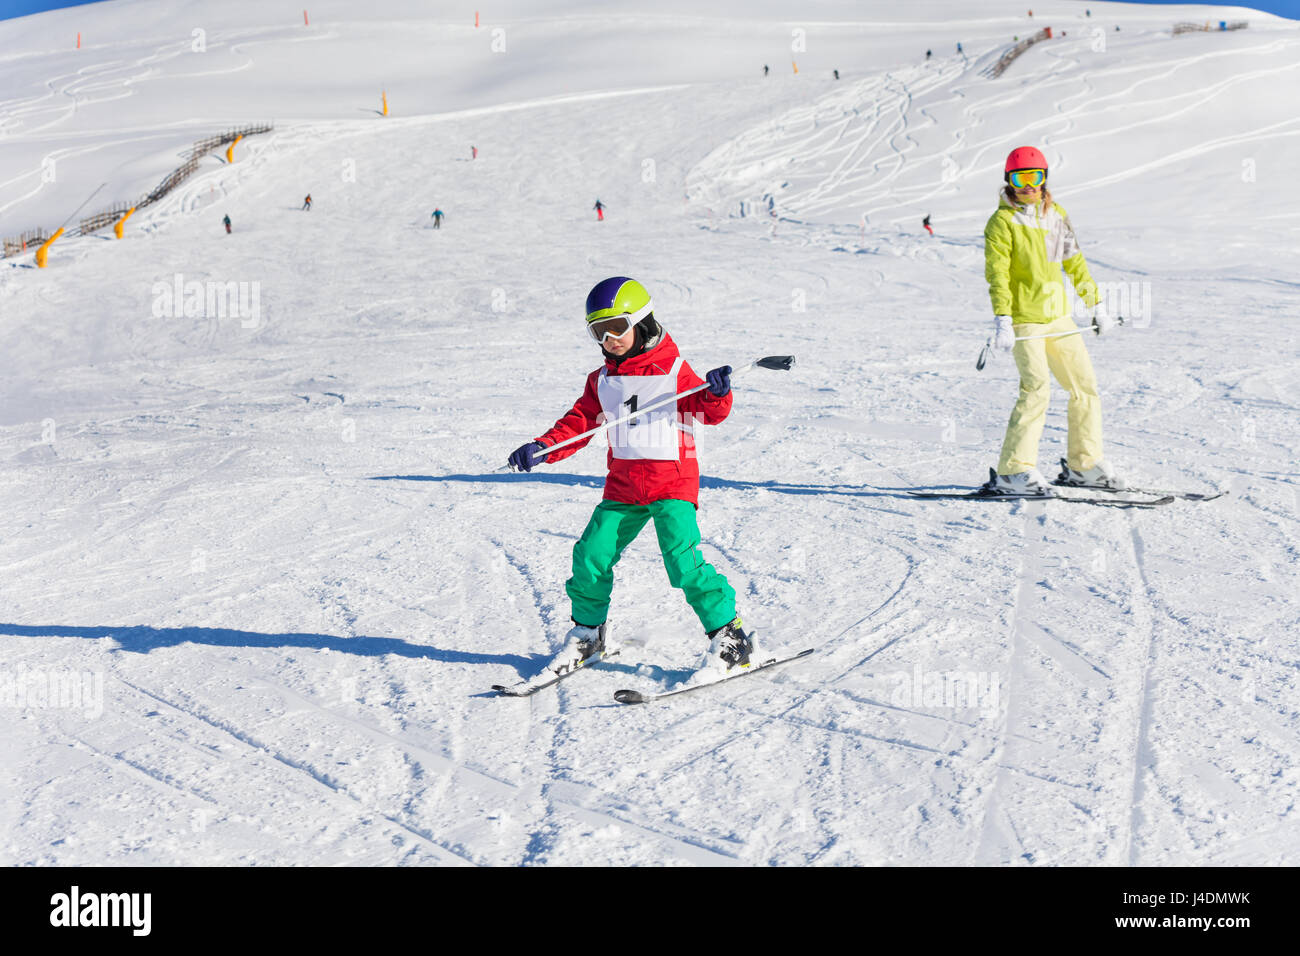 Boy learning downhill skiing with instructor - Stock Image